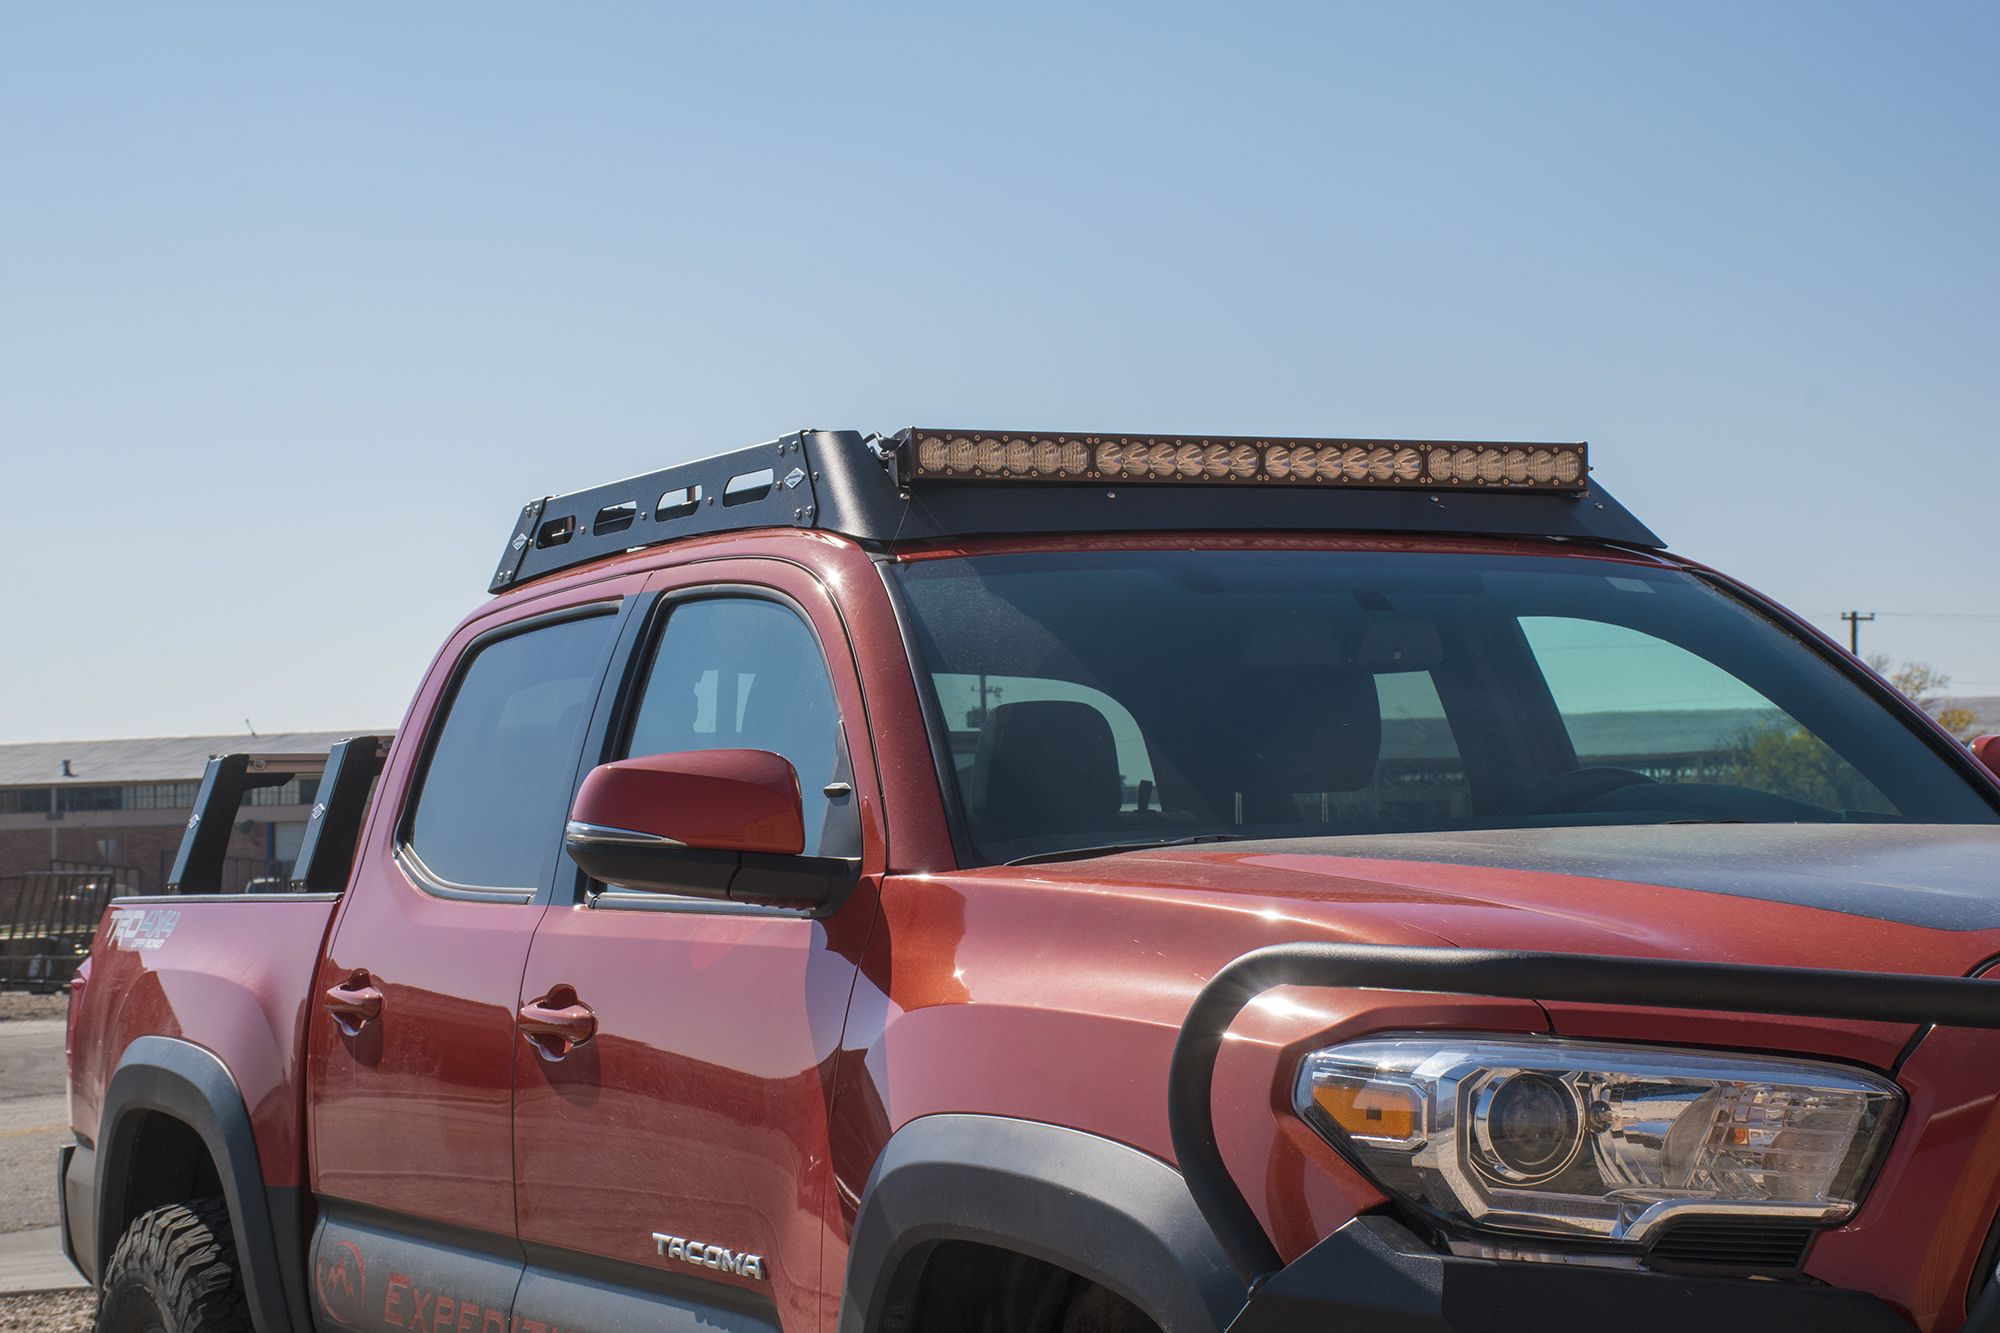 Expedition One Mule Ultra Roof Rack 2016 Tacoma Cars Trucks Roof Rack